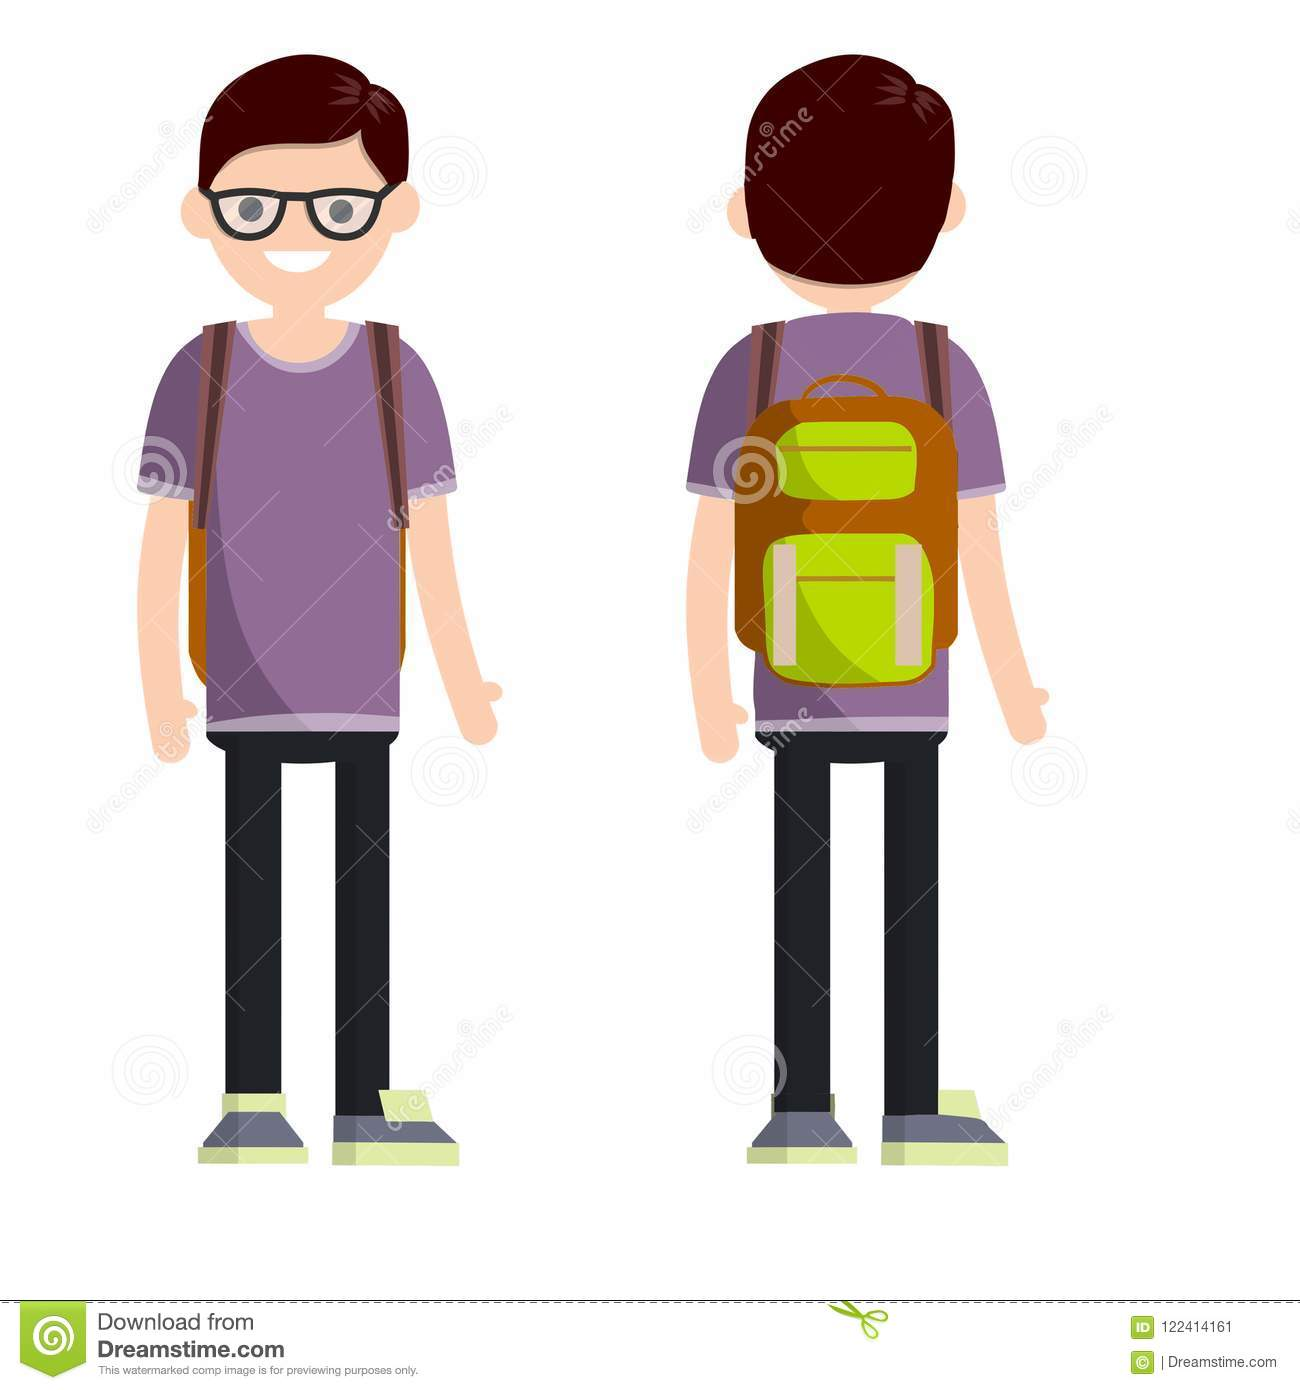 Joven png images | PNGEgg